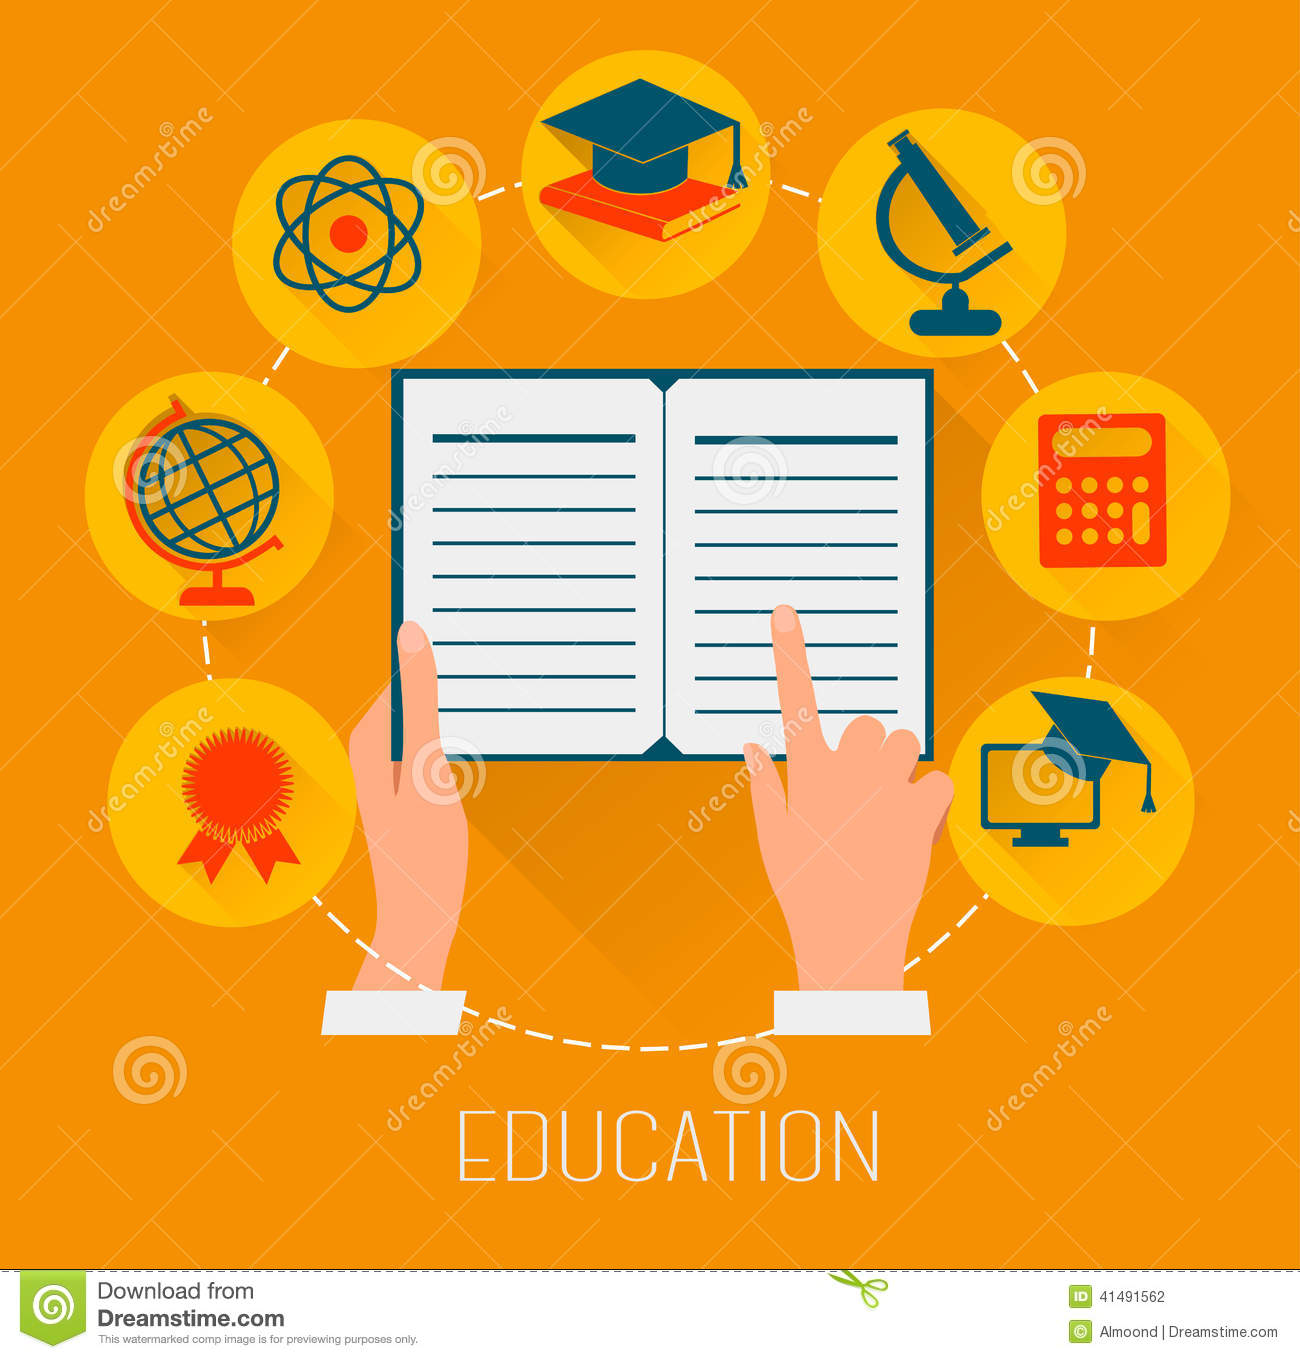 E learning poster designs - Flat Design Concept Icons For Education E Learning Concept Stock Photography